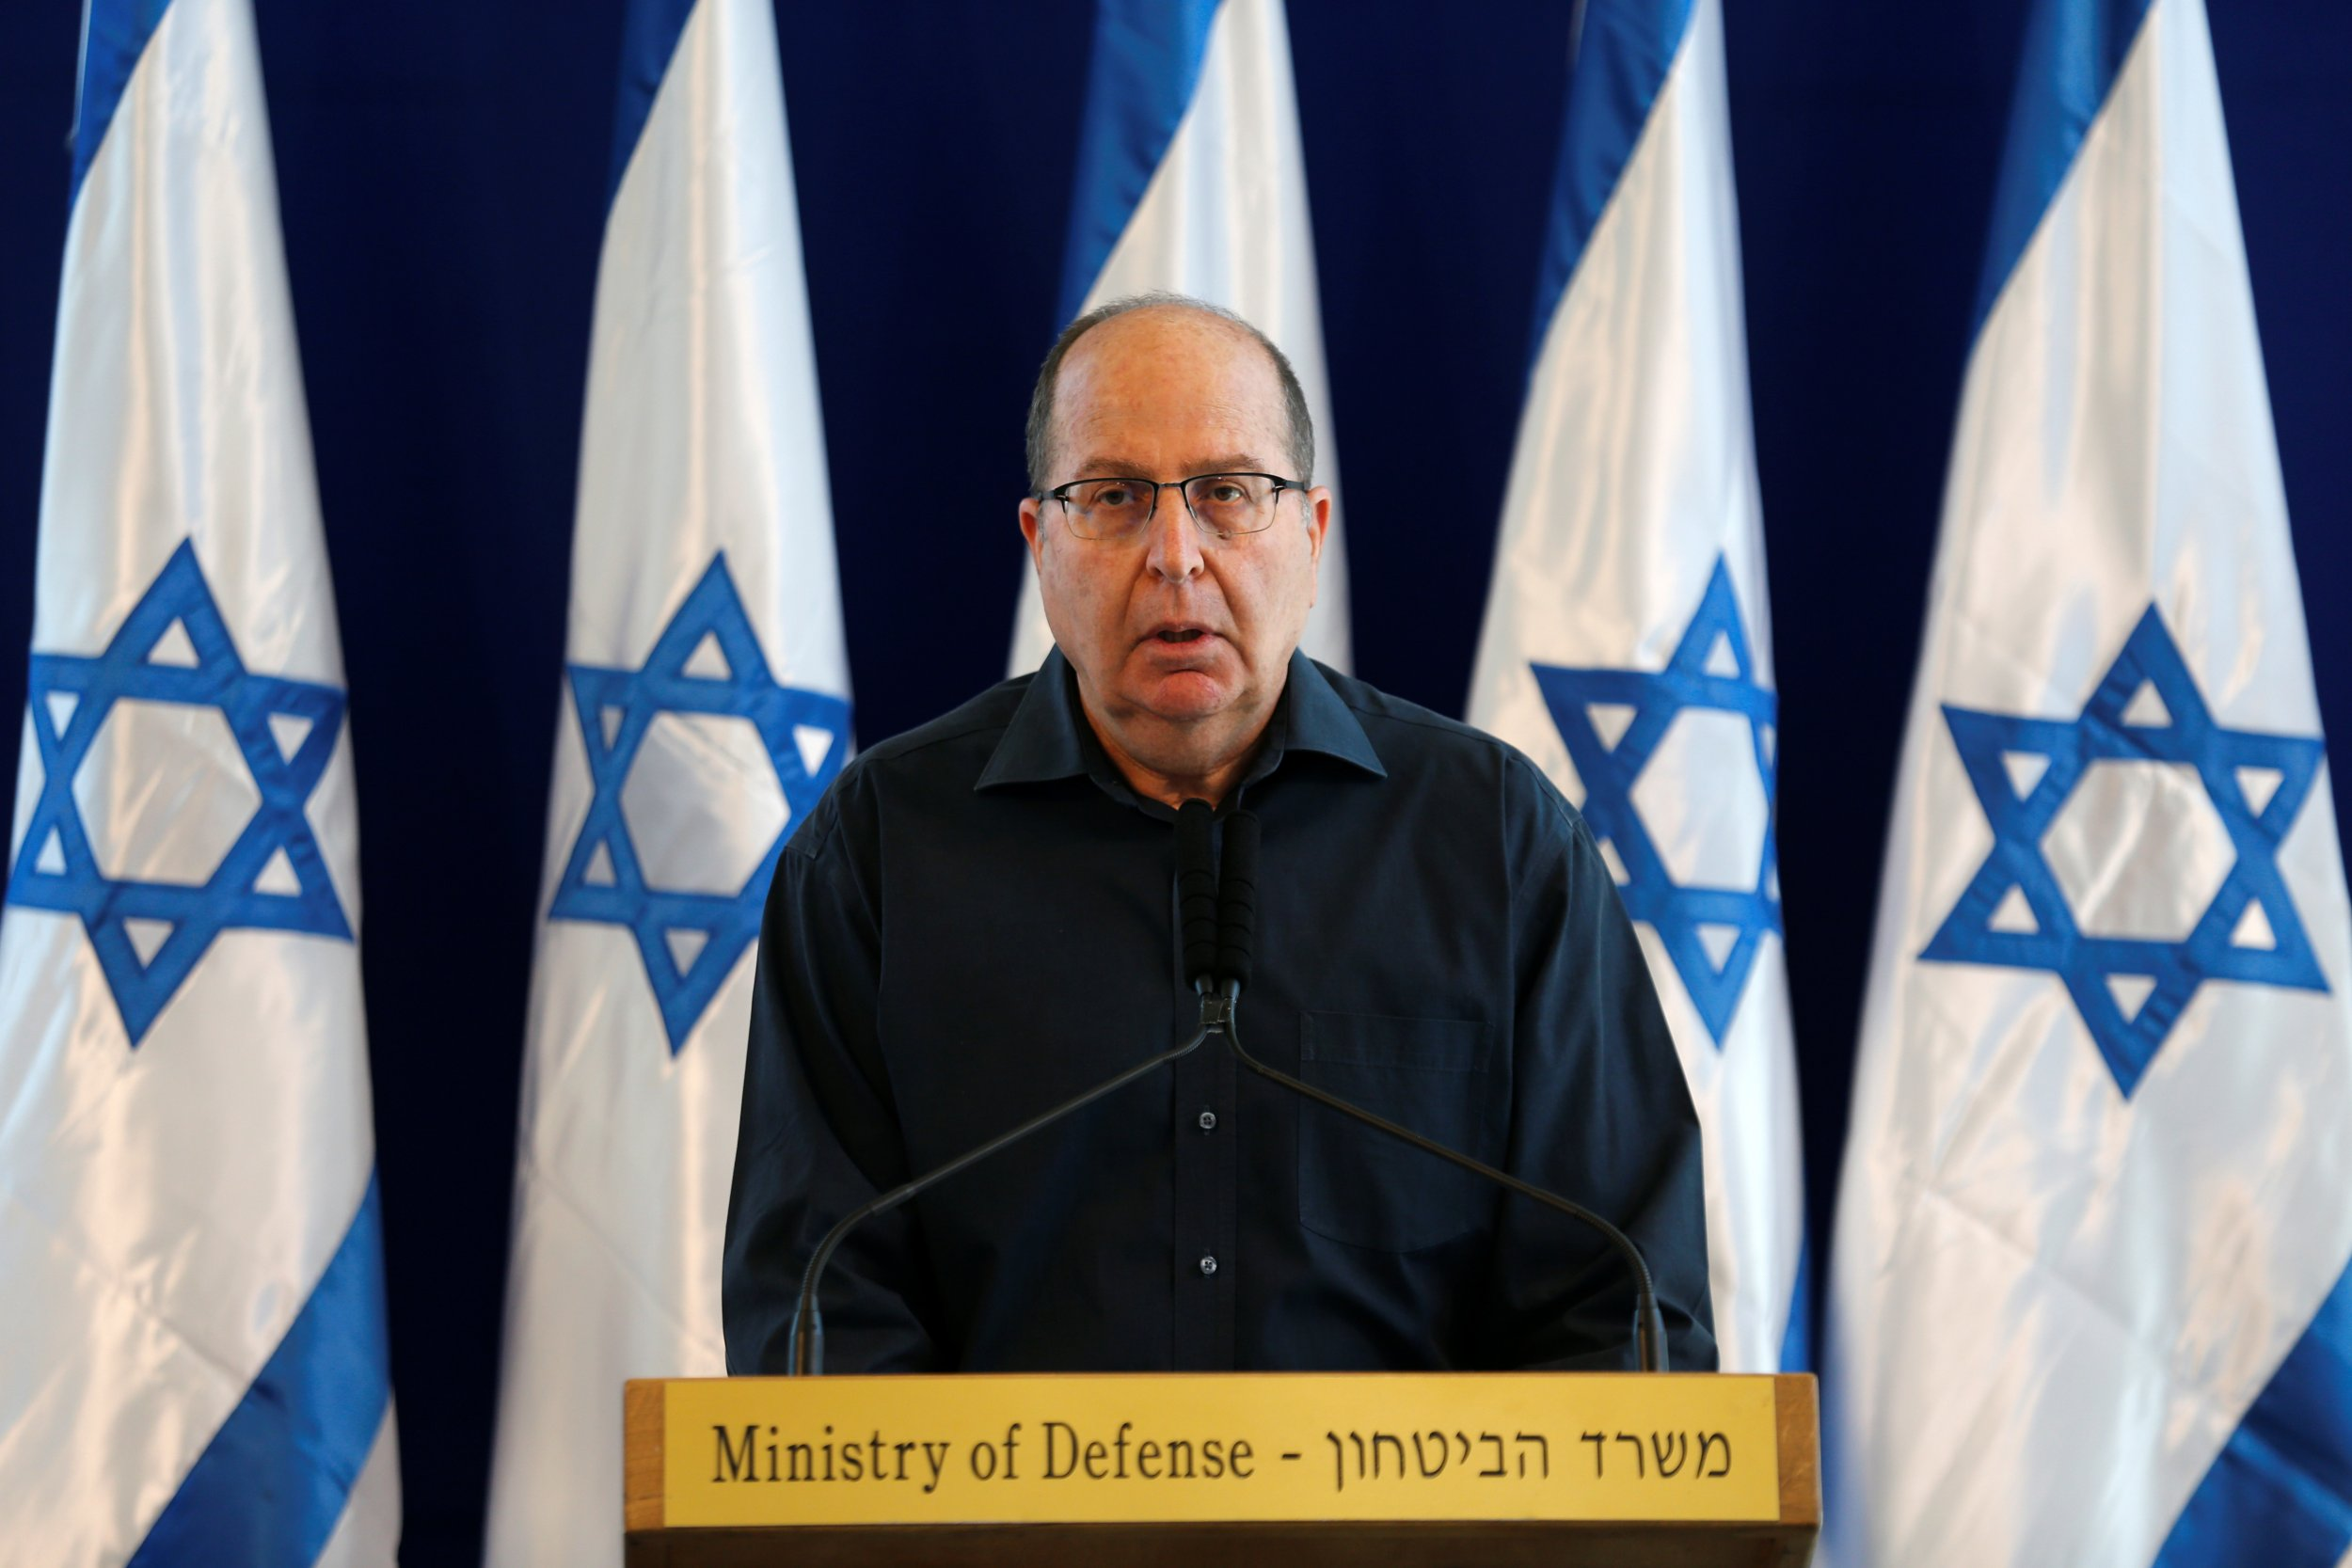 ISIS Fighters Regret Attacking Israel And Have 'Apologized', Former Defense Minister Says